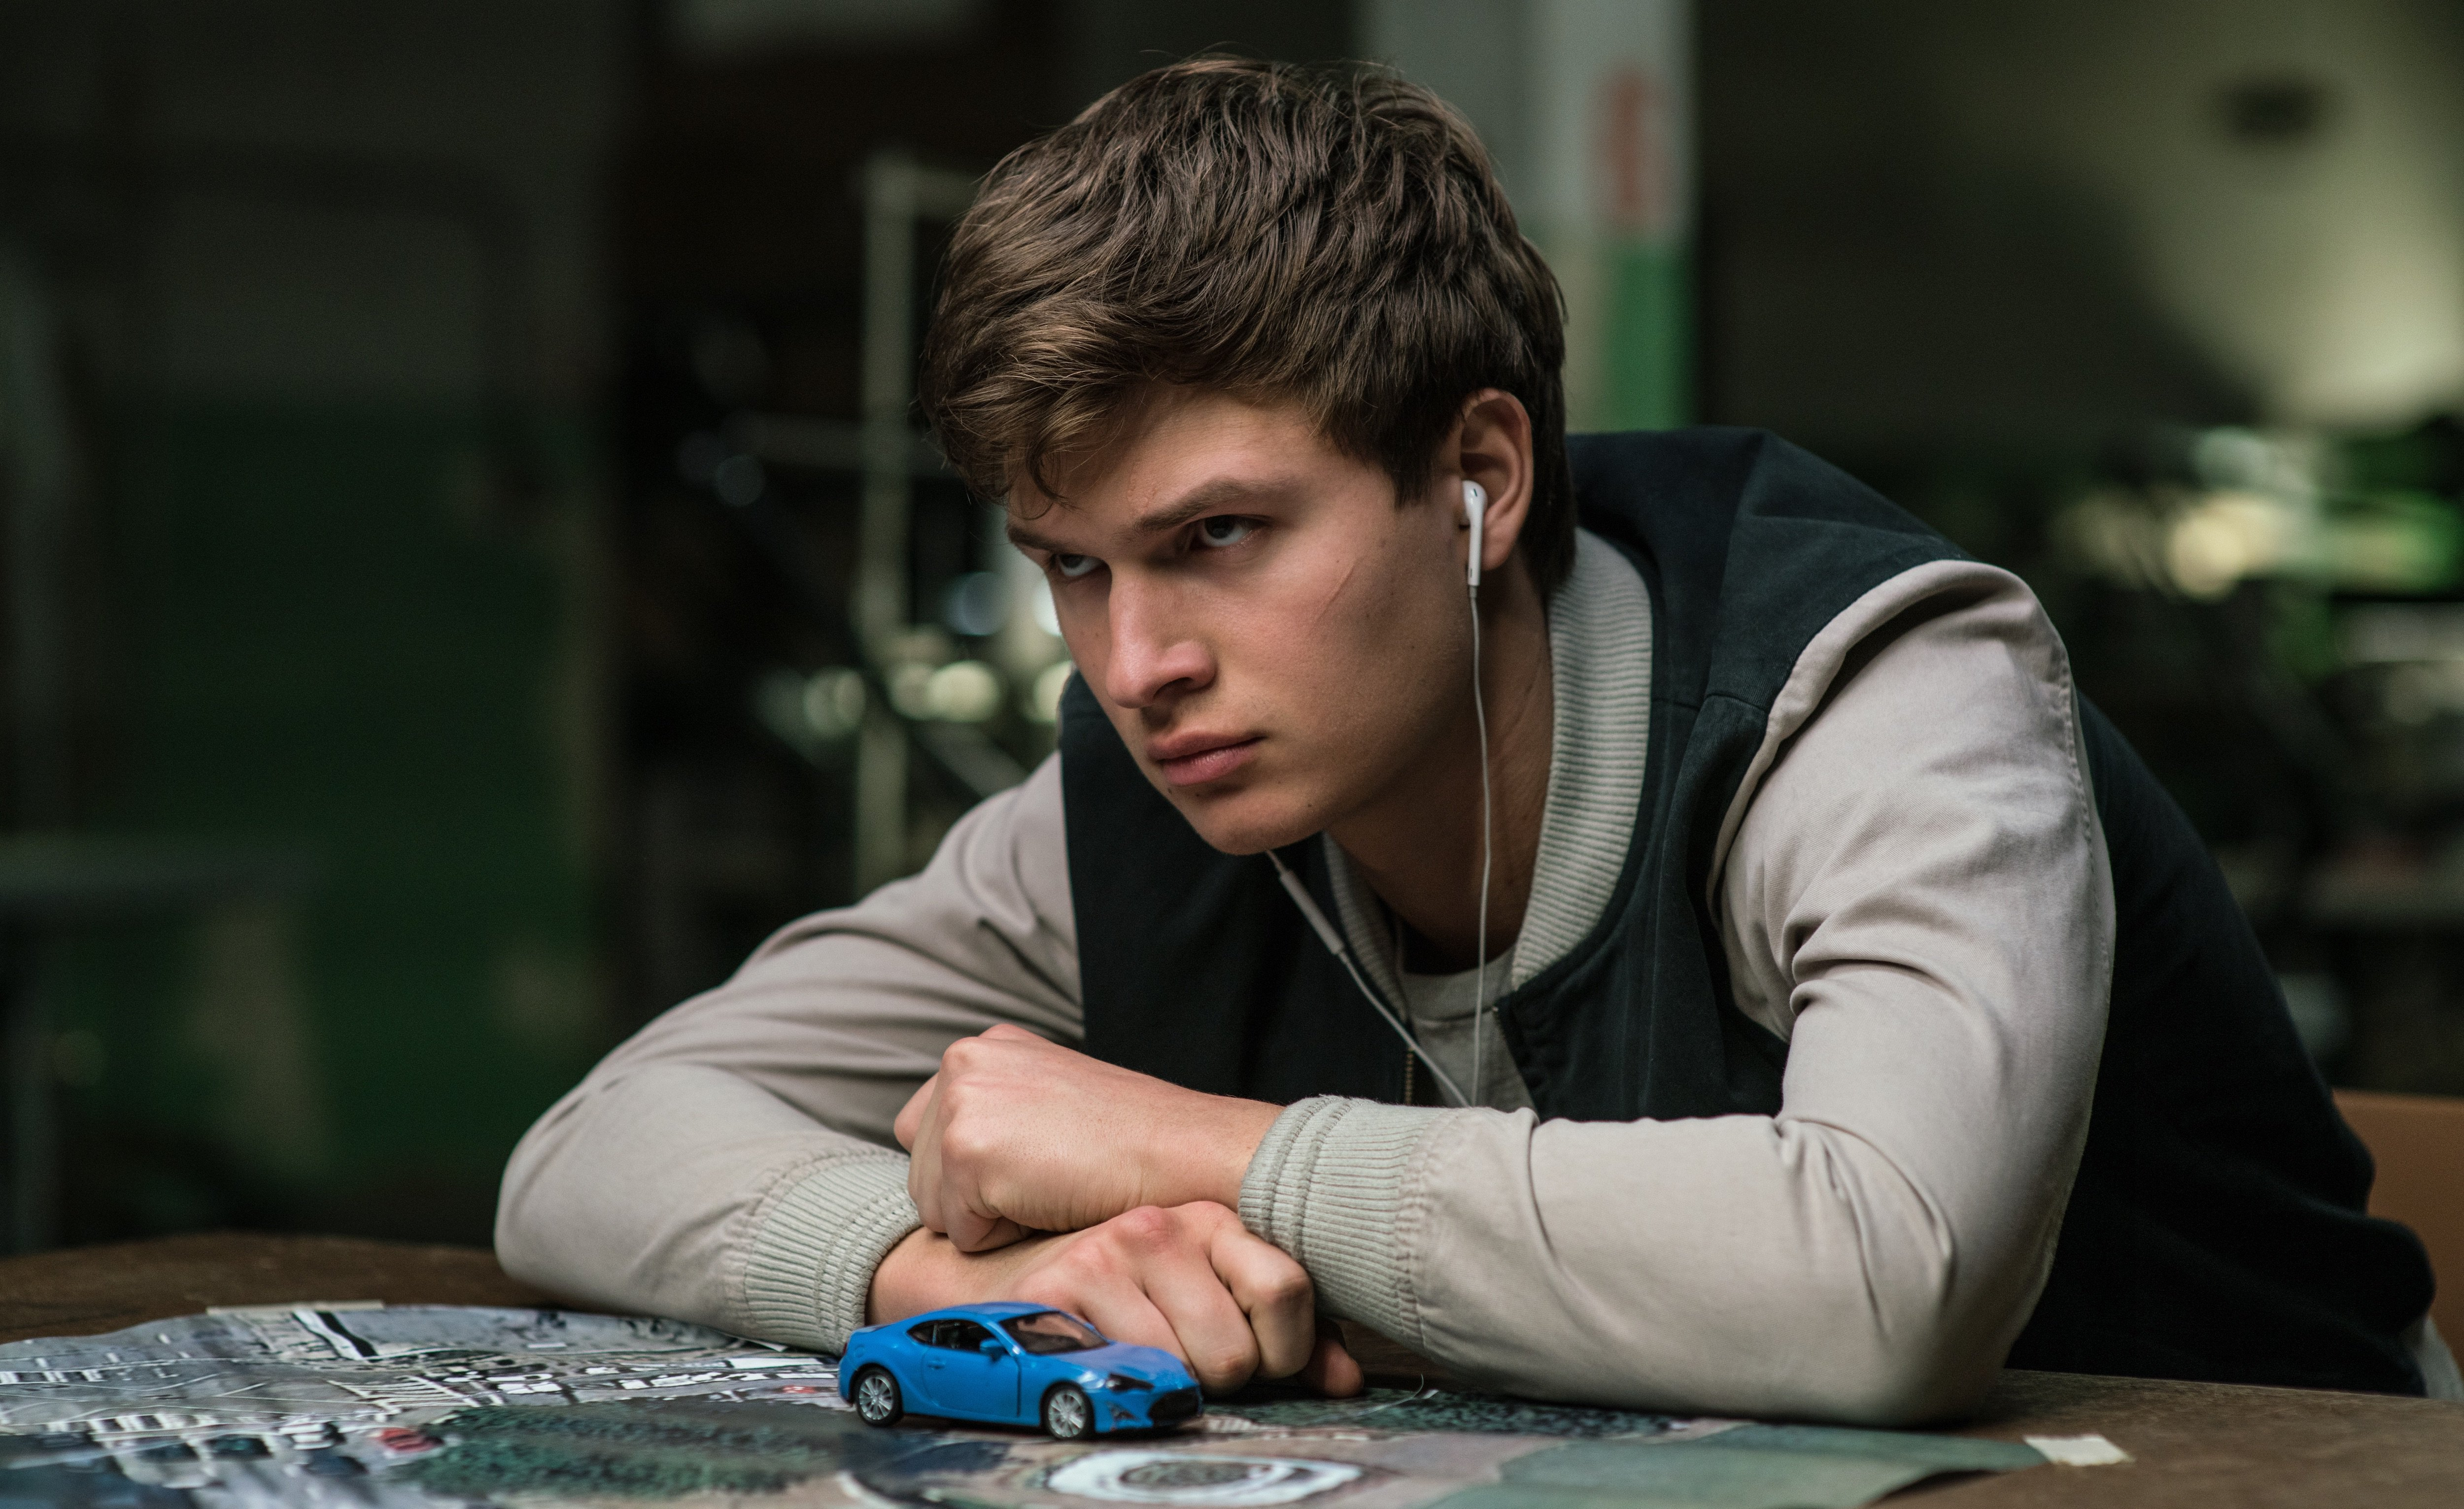 Ansel Elgort as Baby Driver